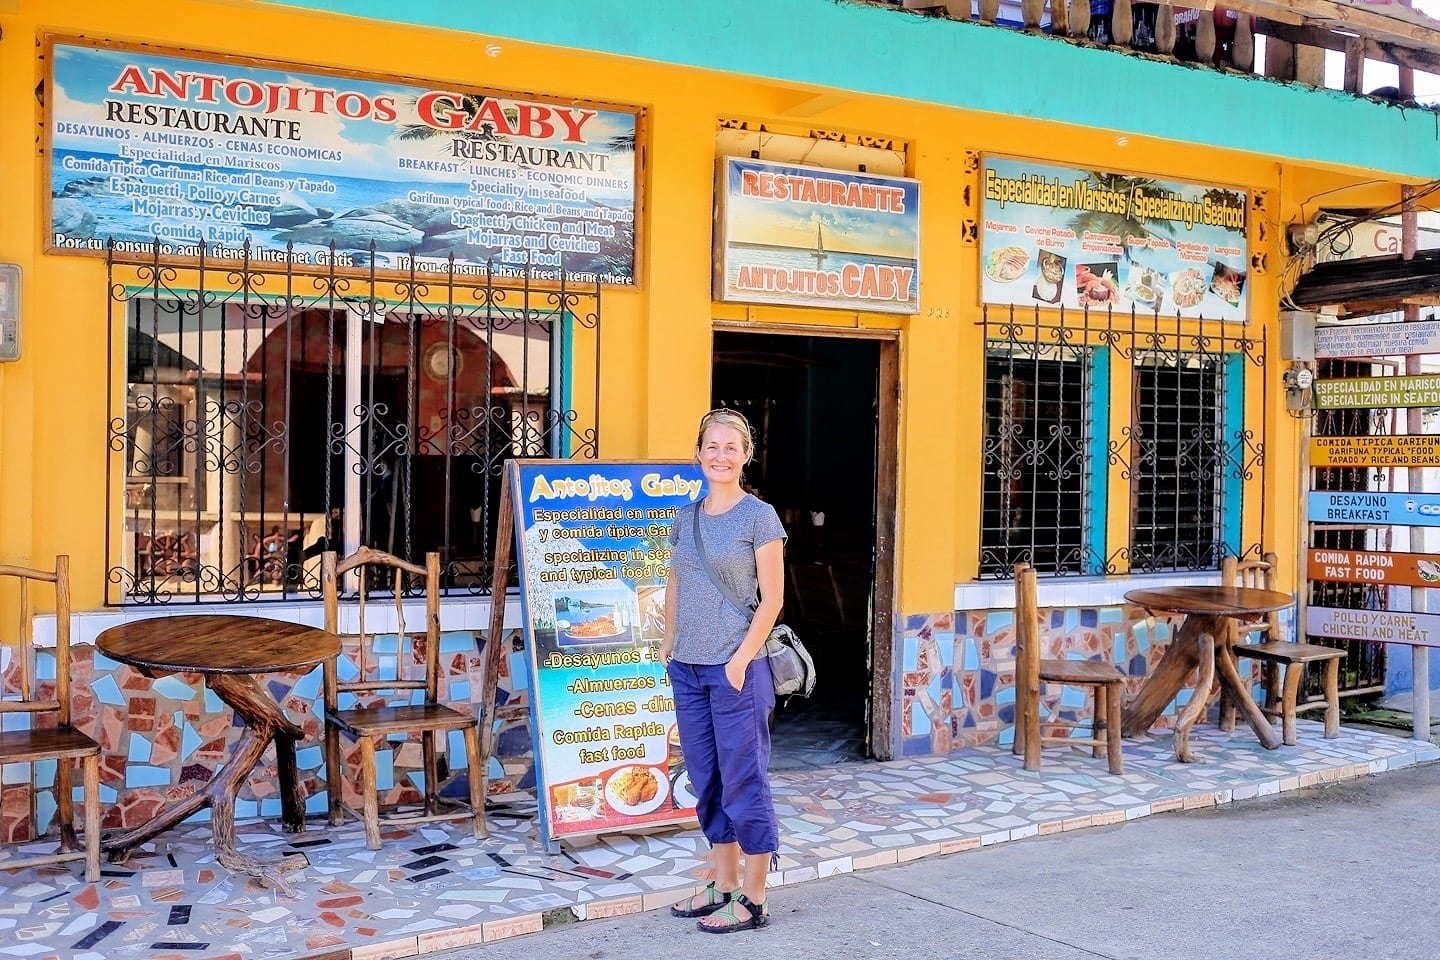 Antojitos Gaby where to eat in Livingston